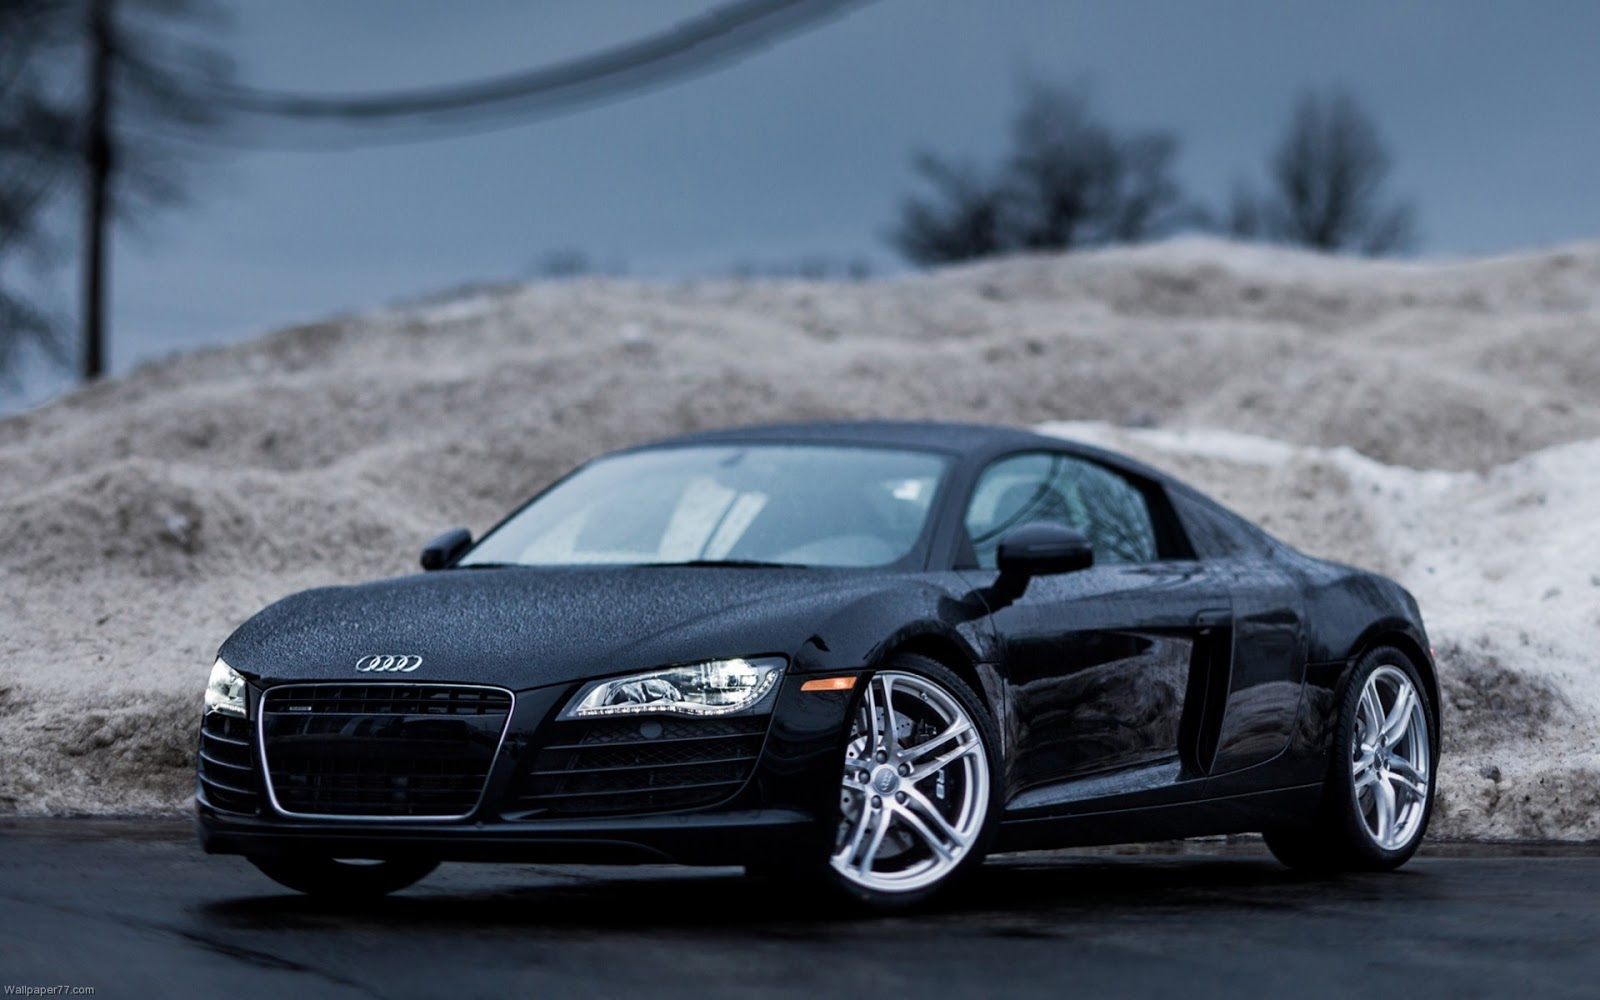 Audi Cars UHD Wallpapers Cars - Audi automobile